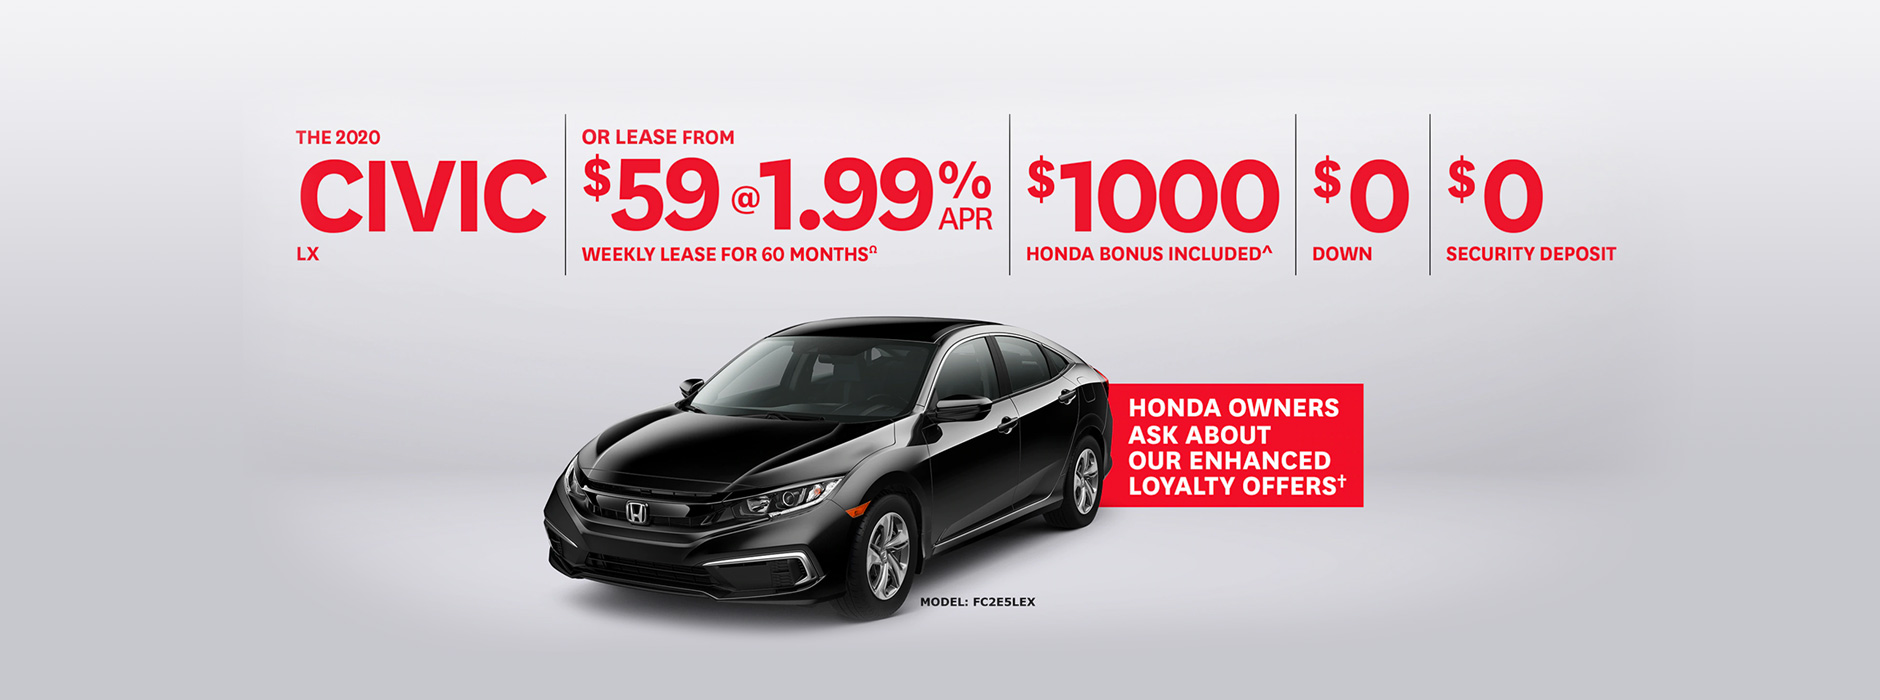 Honda Civic Specials & Promotions